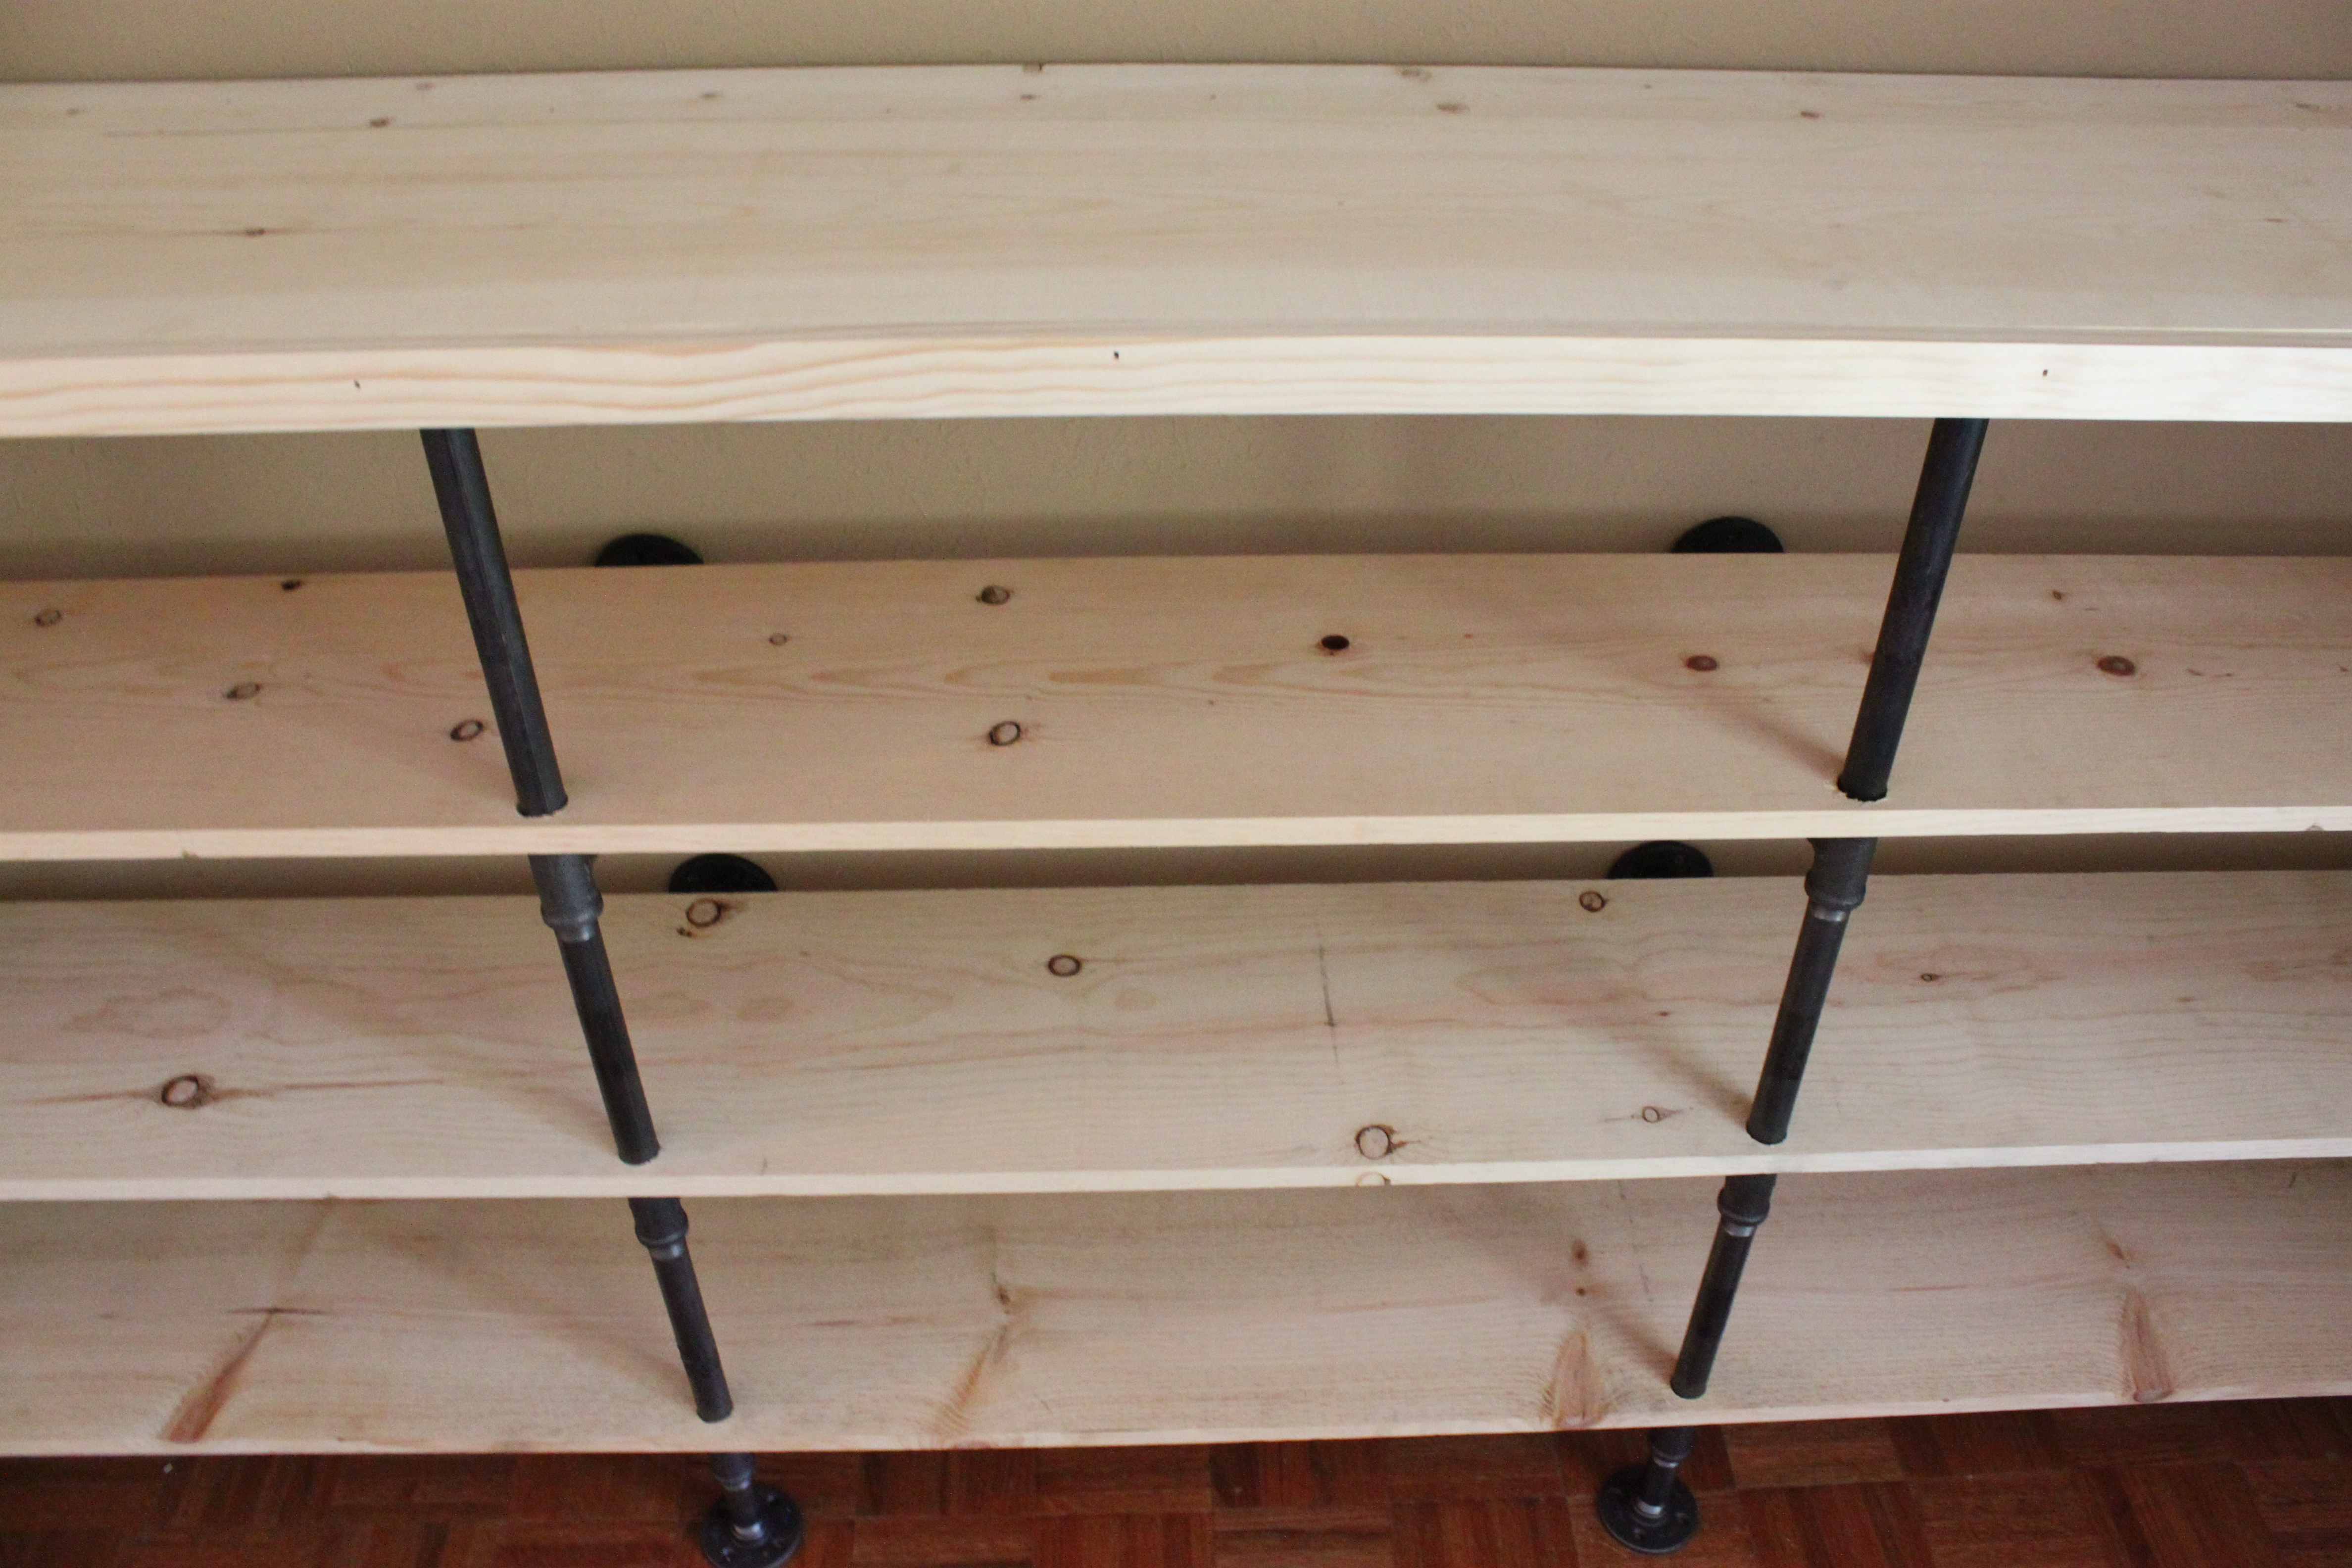 How To Build Plumbing Pipe Shelves | The Cavender Diary